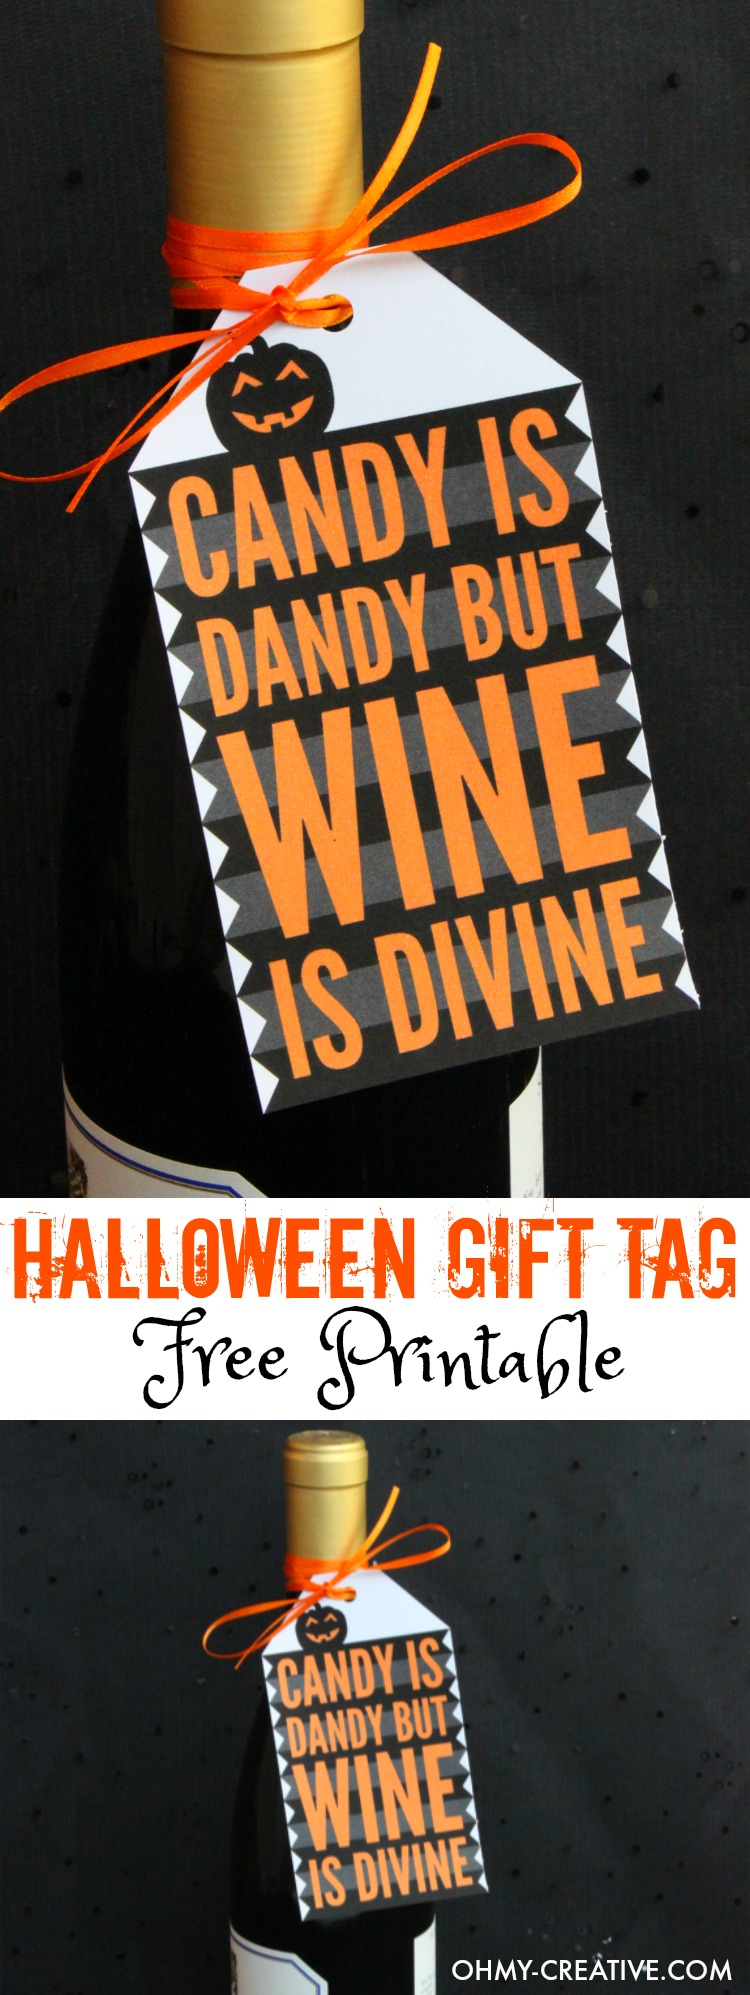 Halloween gift tag free printable oh my creative print out this halloween gift tag free printable for your halloween party hostess gift great negle Choice Image